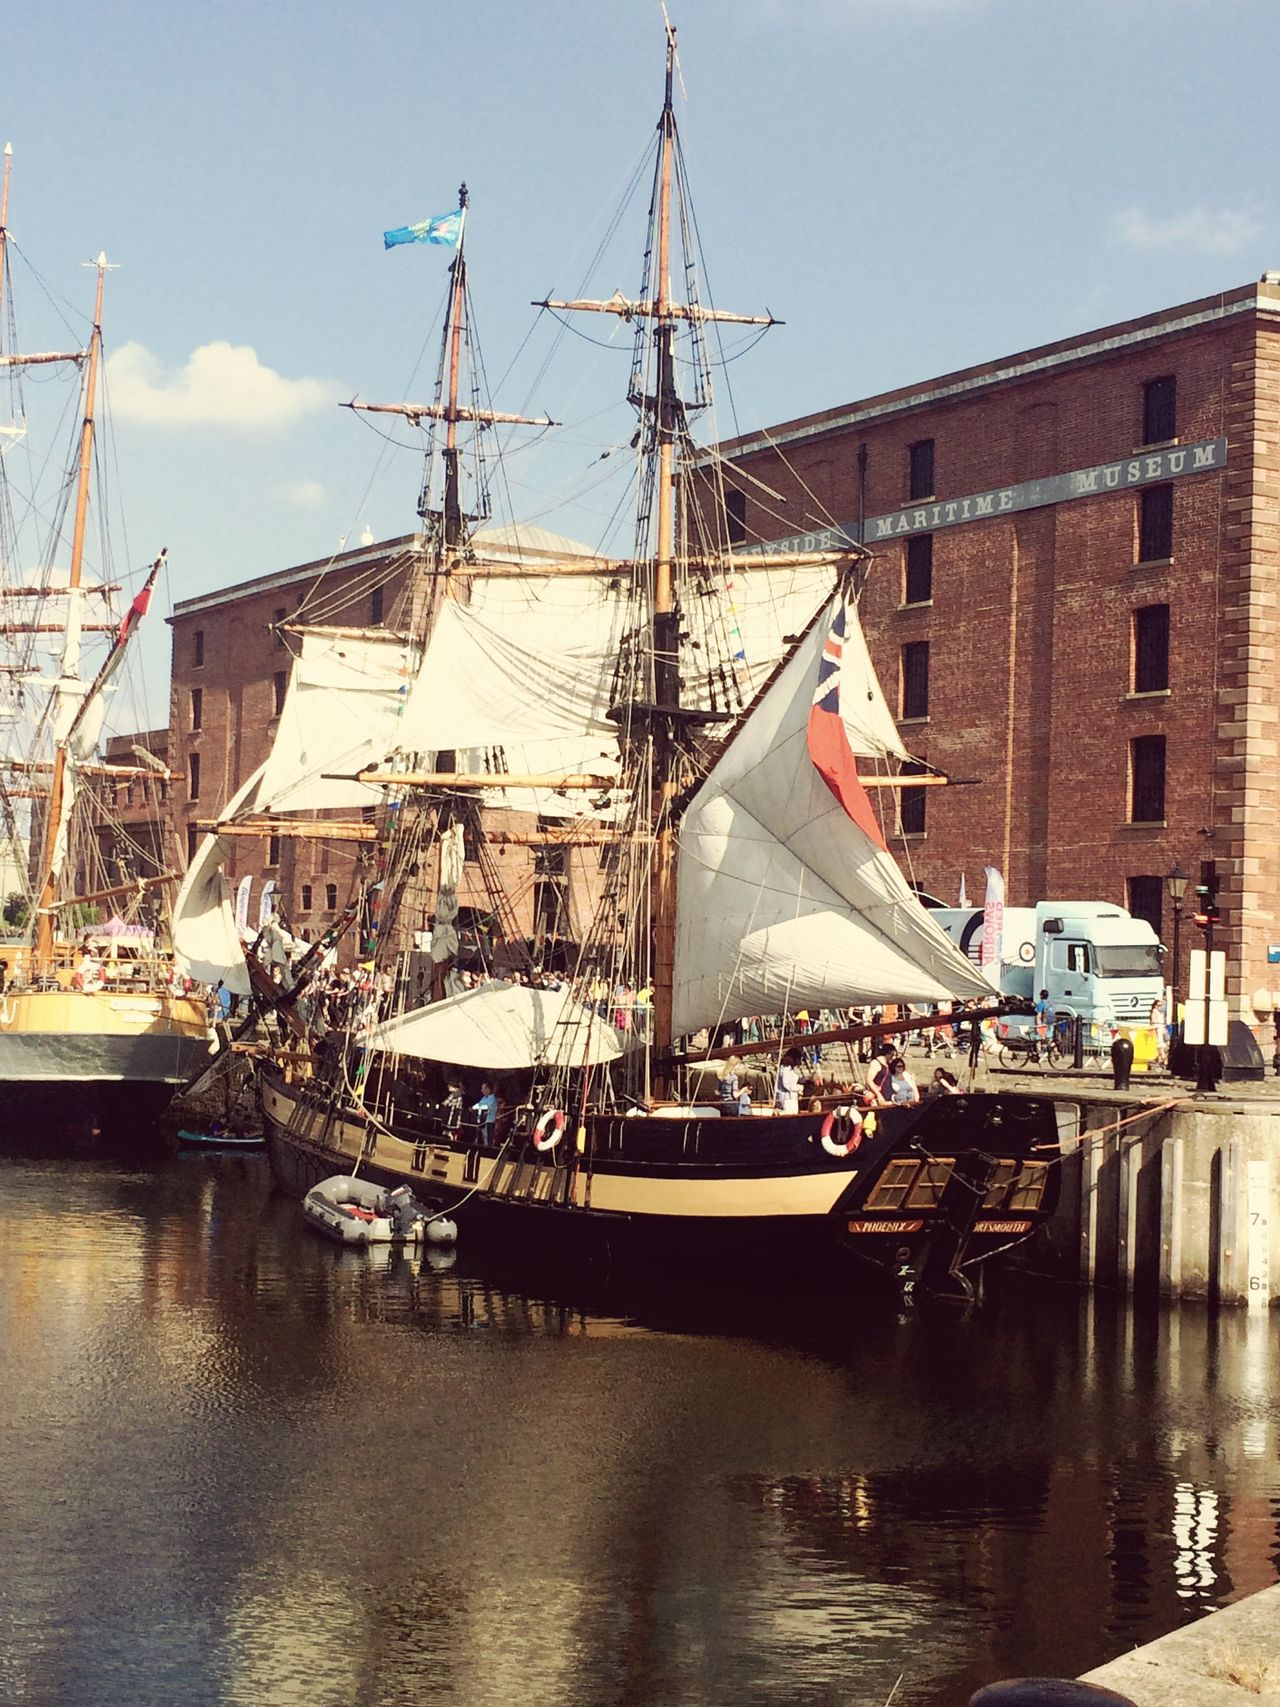 Liverpool Liverpool, England Docks AlbertDocks Boat Boats⛵️ Merseyside Mersey River Sunny Day Norain Pirate Pirateship